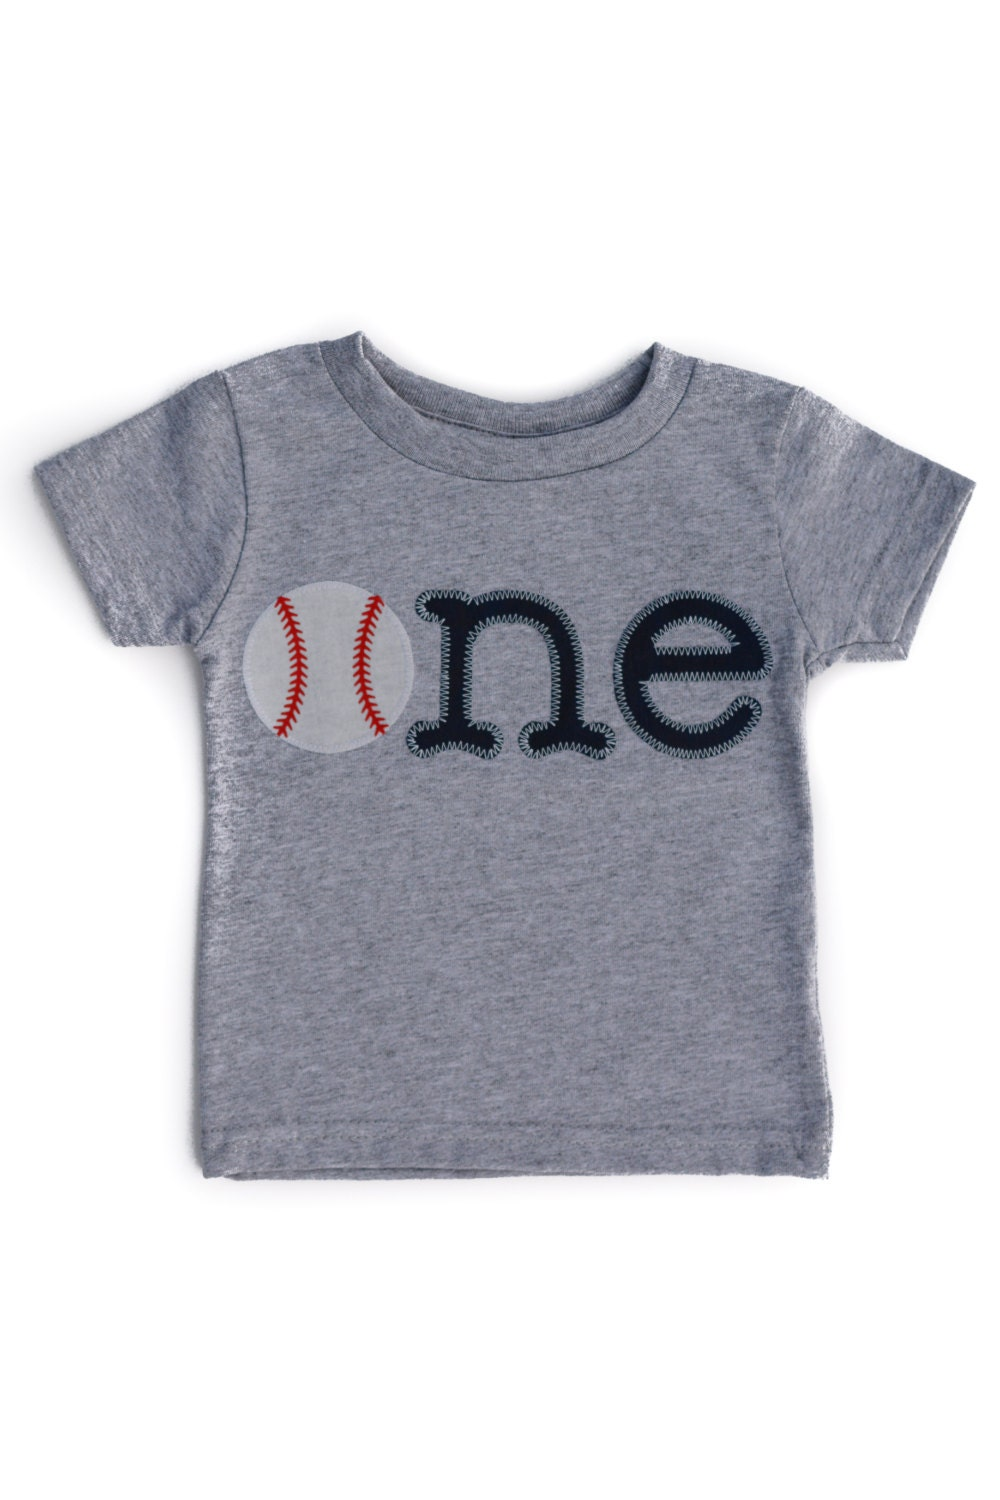 Baby Boys T-Shirts & Tank Tops; Toddler Girls T-Shirts & Tank Tops; 1st Birthday T-shirts. Showing 40 of results that match your query. Search Product Result. Product - Monkey First Birthday Toddler T-Shirt Product - 1st Birthday Boys Teddy Bear Toddler T-Shirt. Product Image. Price $ Product Title.